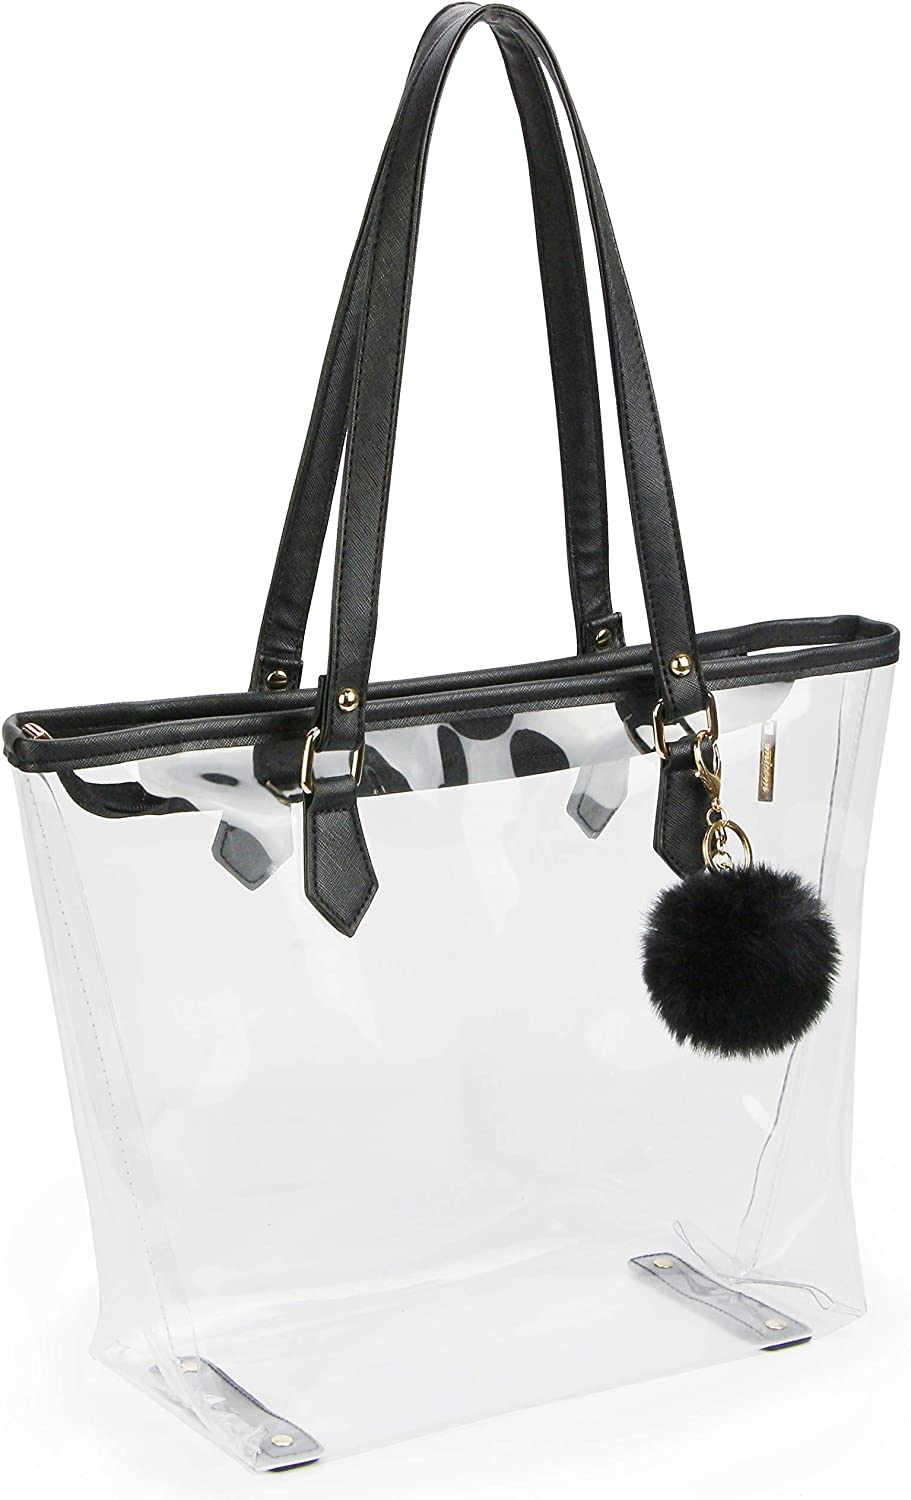 Large Clear Bag PVC Transparent Shoulder Handbag with Black Plush Pendant